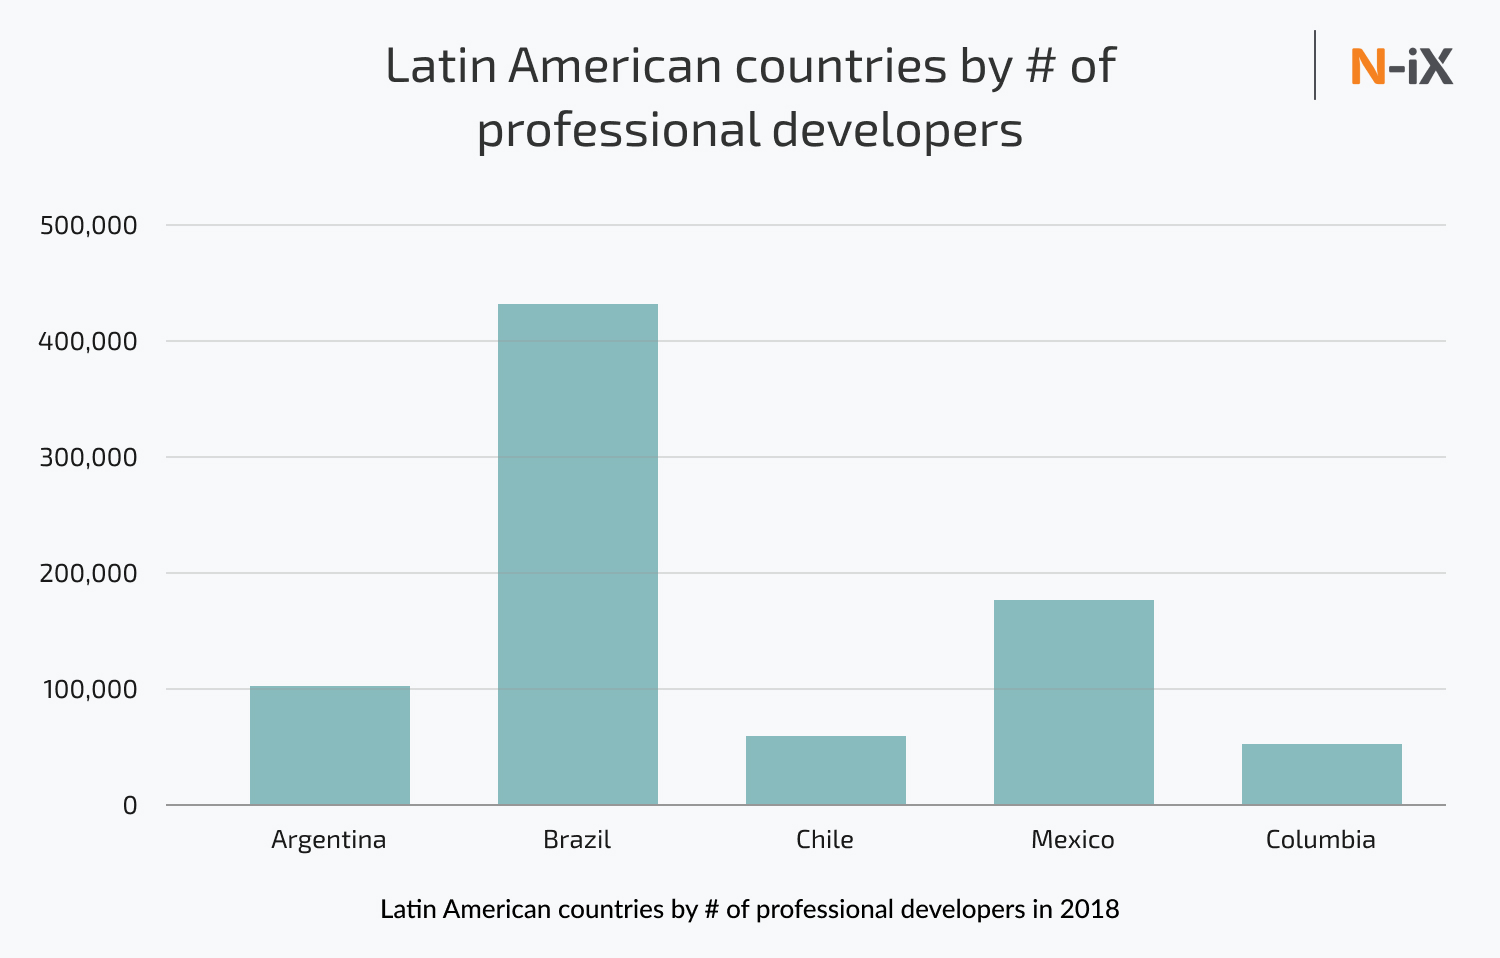 Best countries for IT outsourcing by the number of professional developers in Latin America